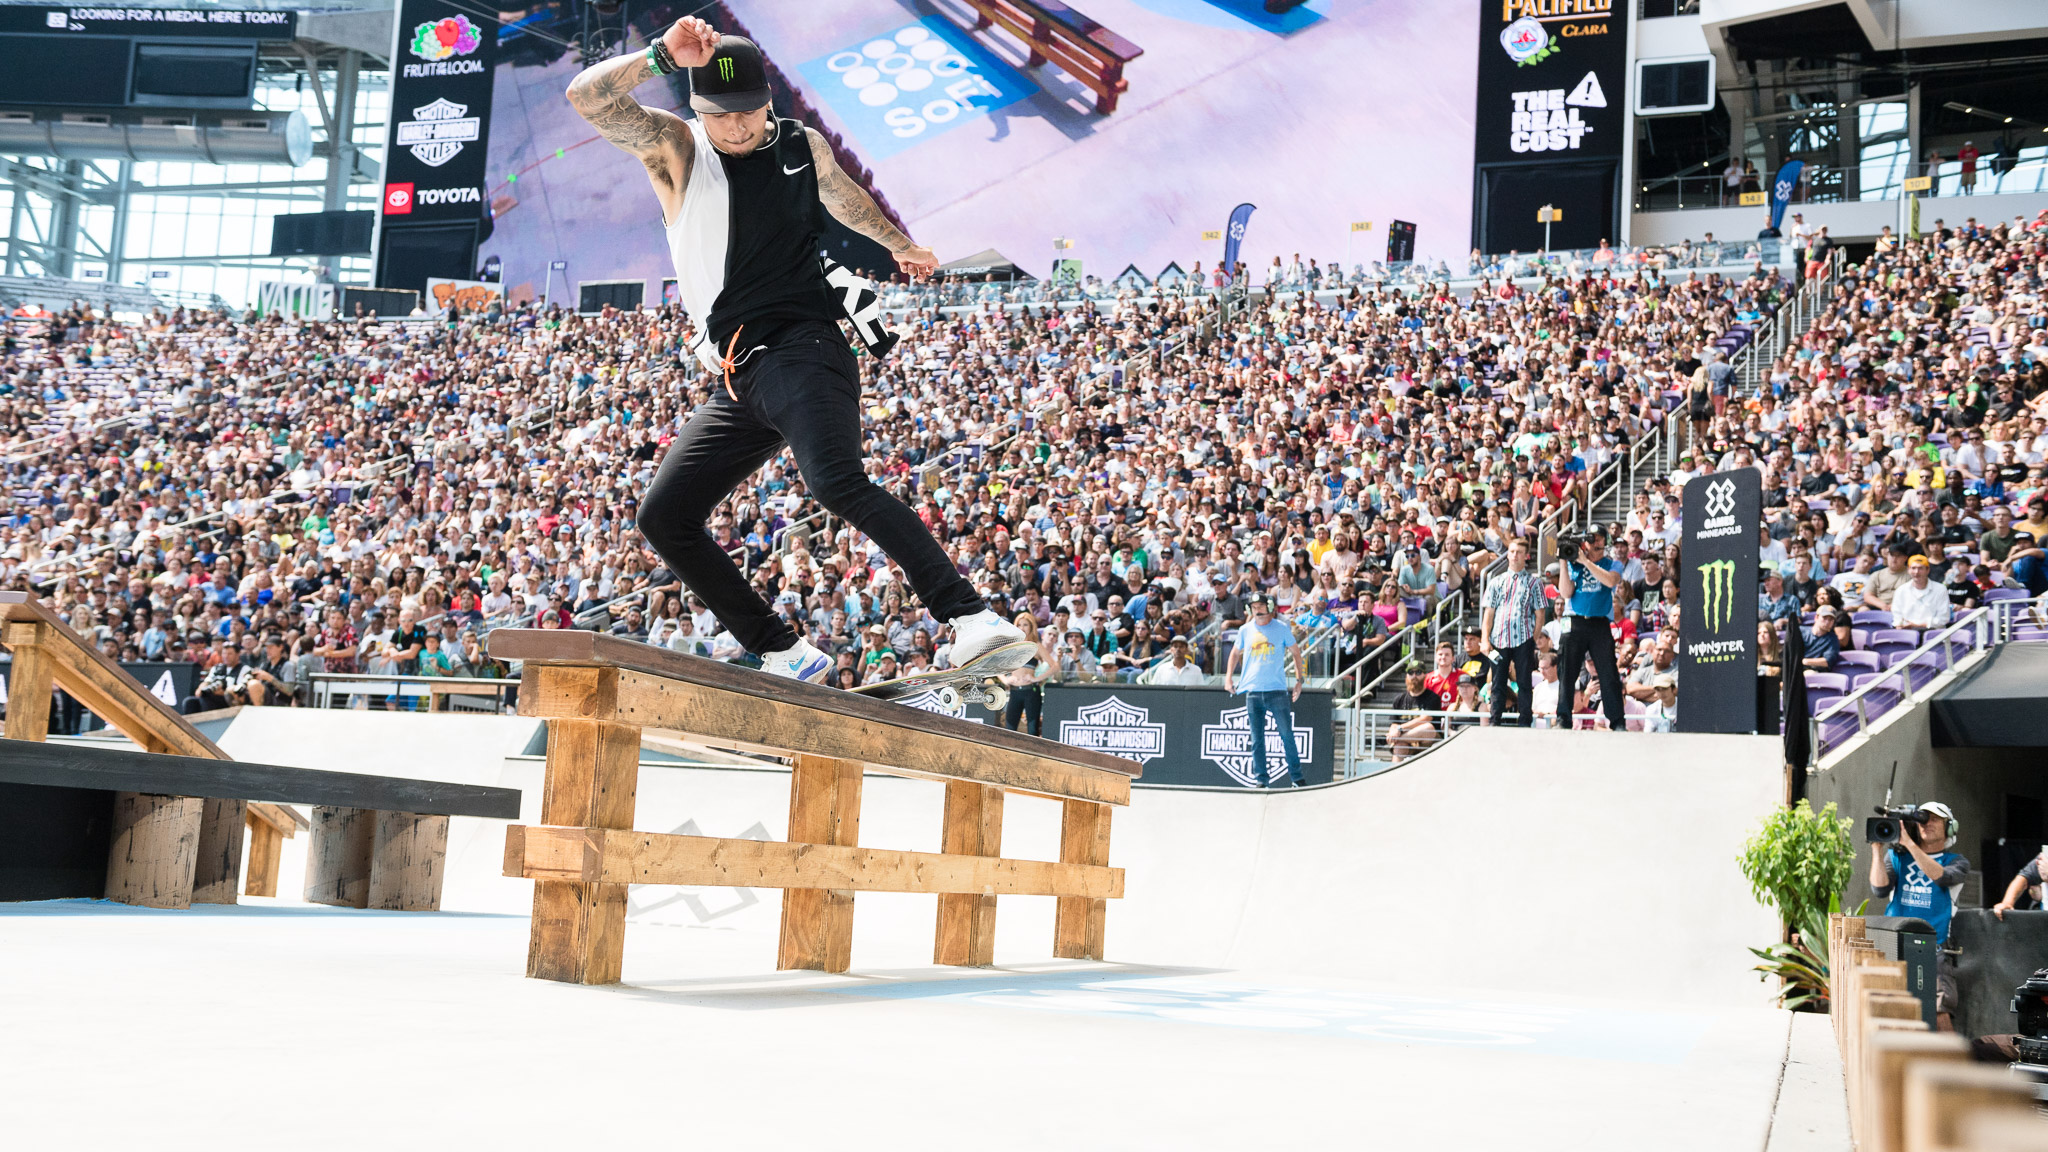 X Games Shanghai 2019: Nyjah Huston